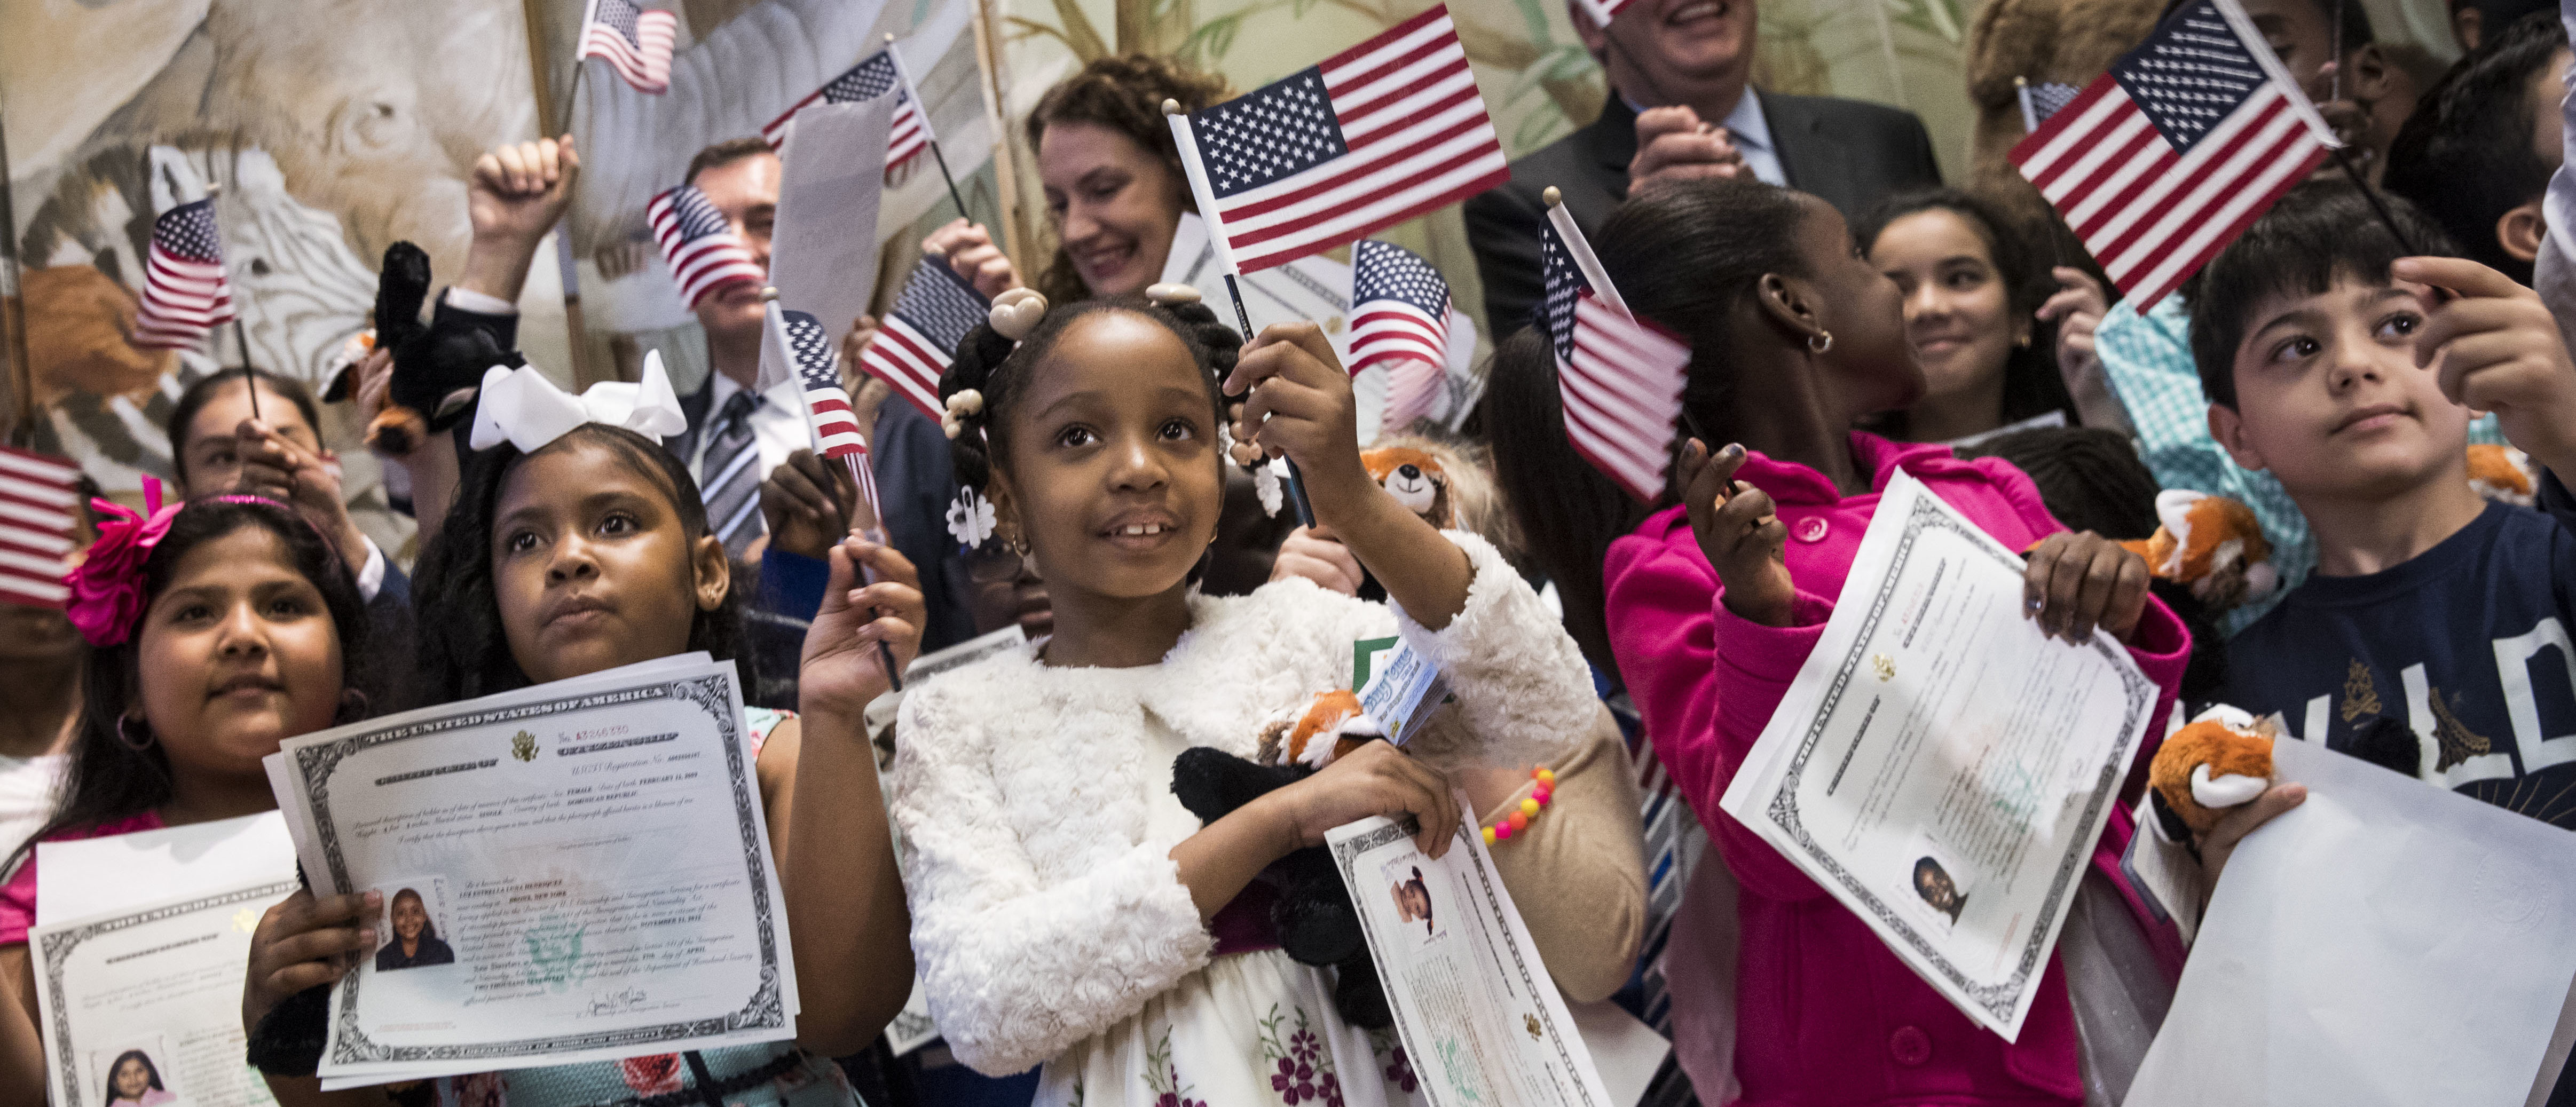 Children wave American flags and hold their certificates of citizenship after becoming U.S. citizens during a citizenship ceremony at The Bronx Zoo, May 5, 2017 in The Bronx borough of New York City. (Photo by Drew Angerer/Getty Images)